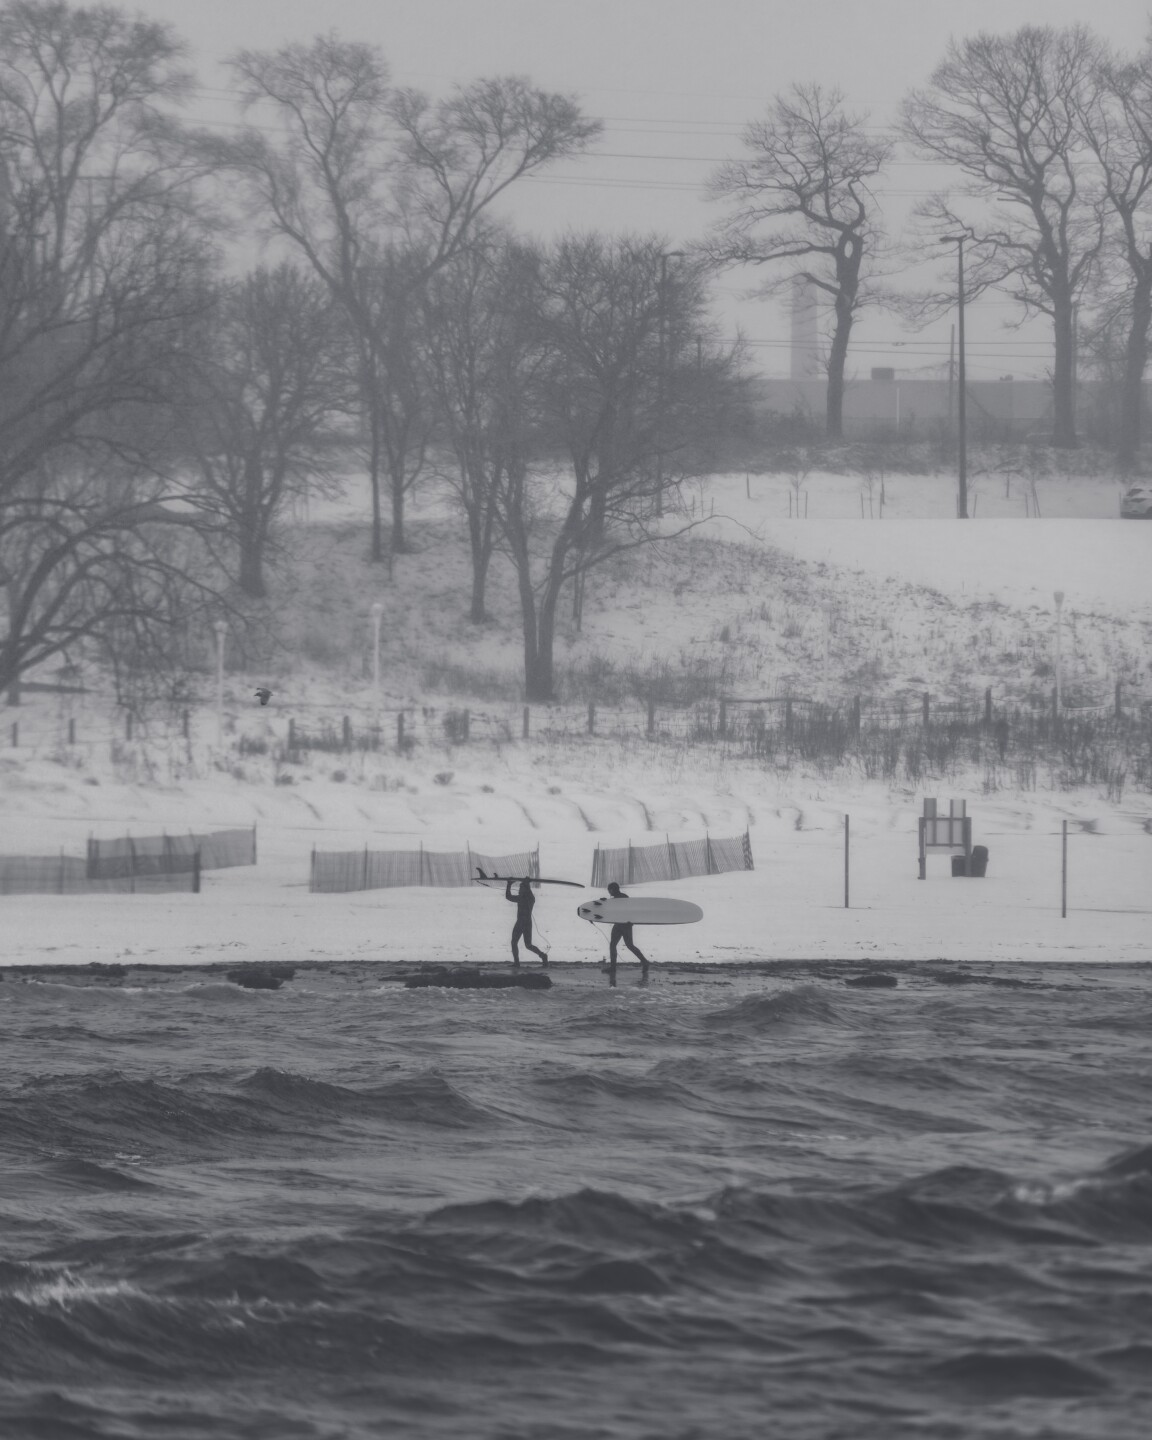 Surfers brave the cold at Edgewater Beach to catch some waves.